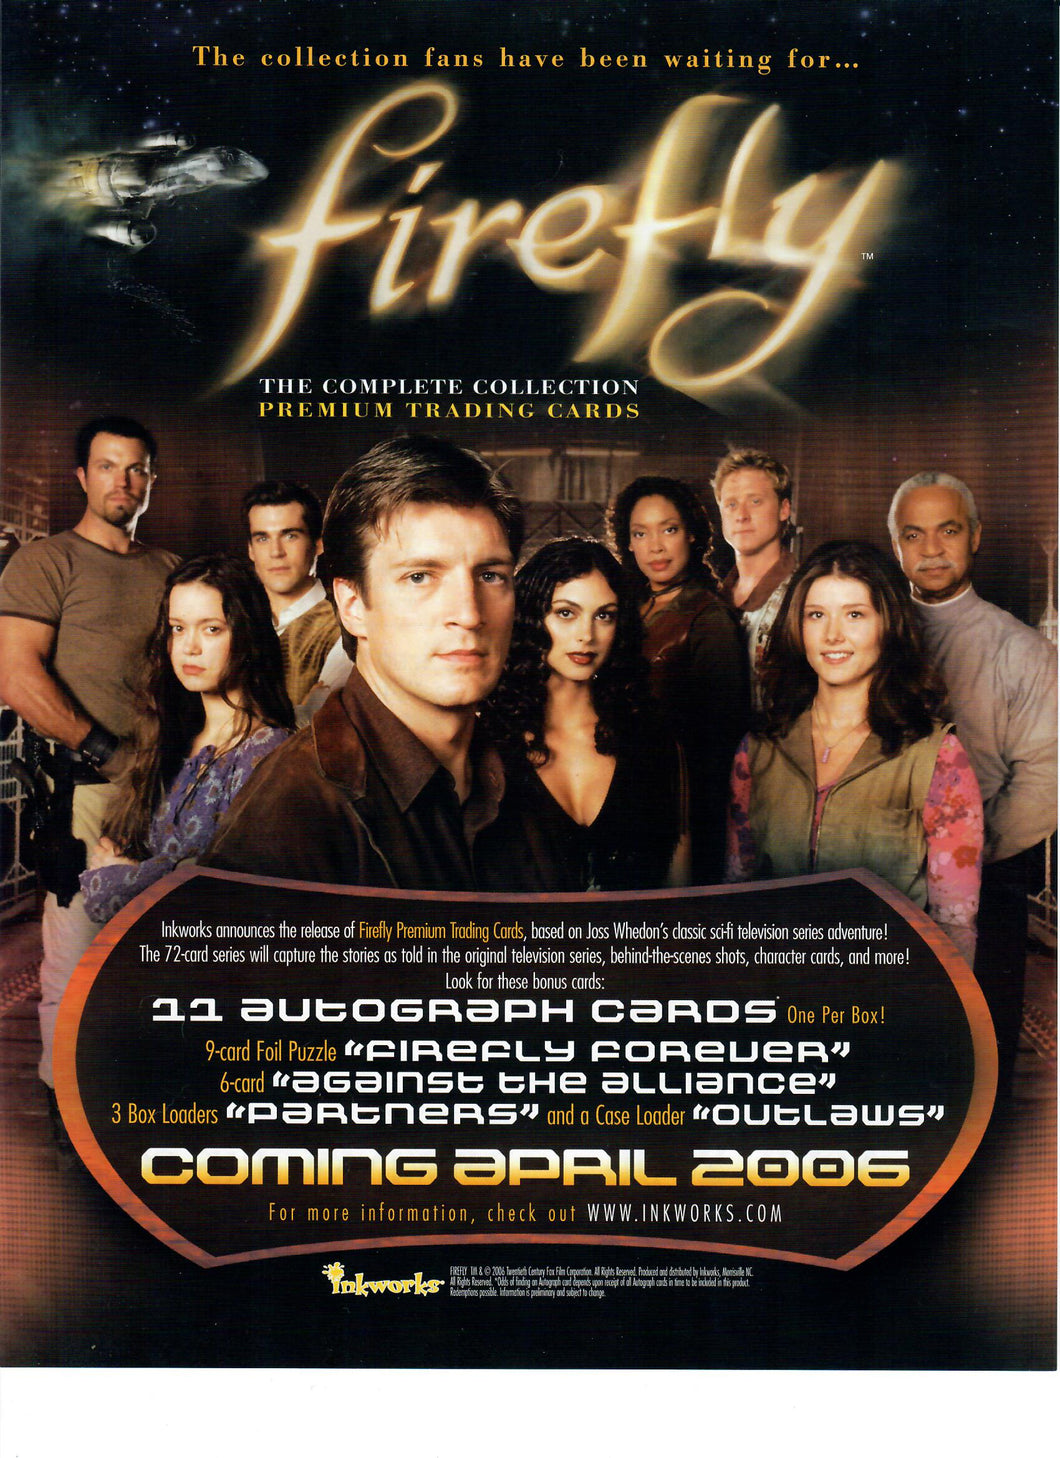 Sell Sheet - FIREFLY - The Complete Collection Premium Trading Cards  - Inkworks - Counter Slick